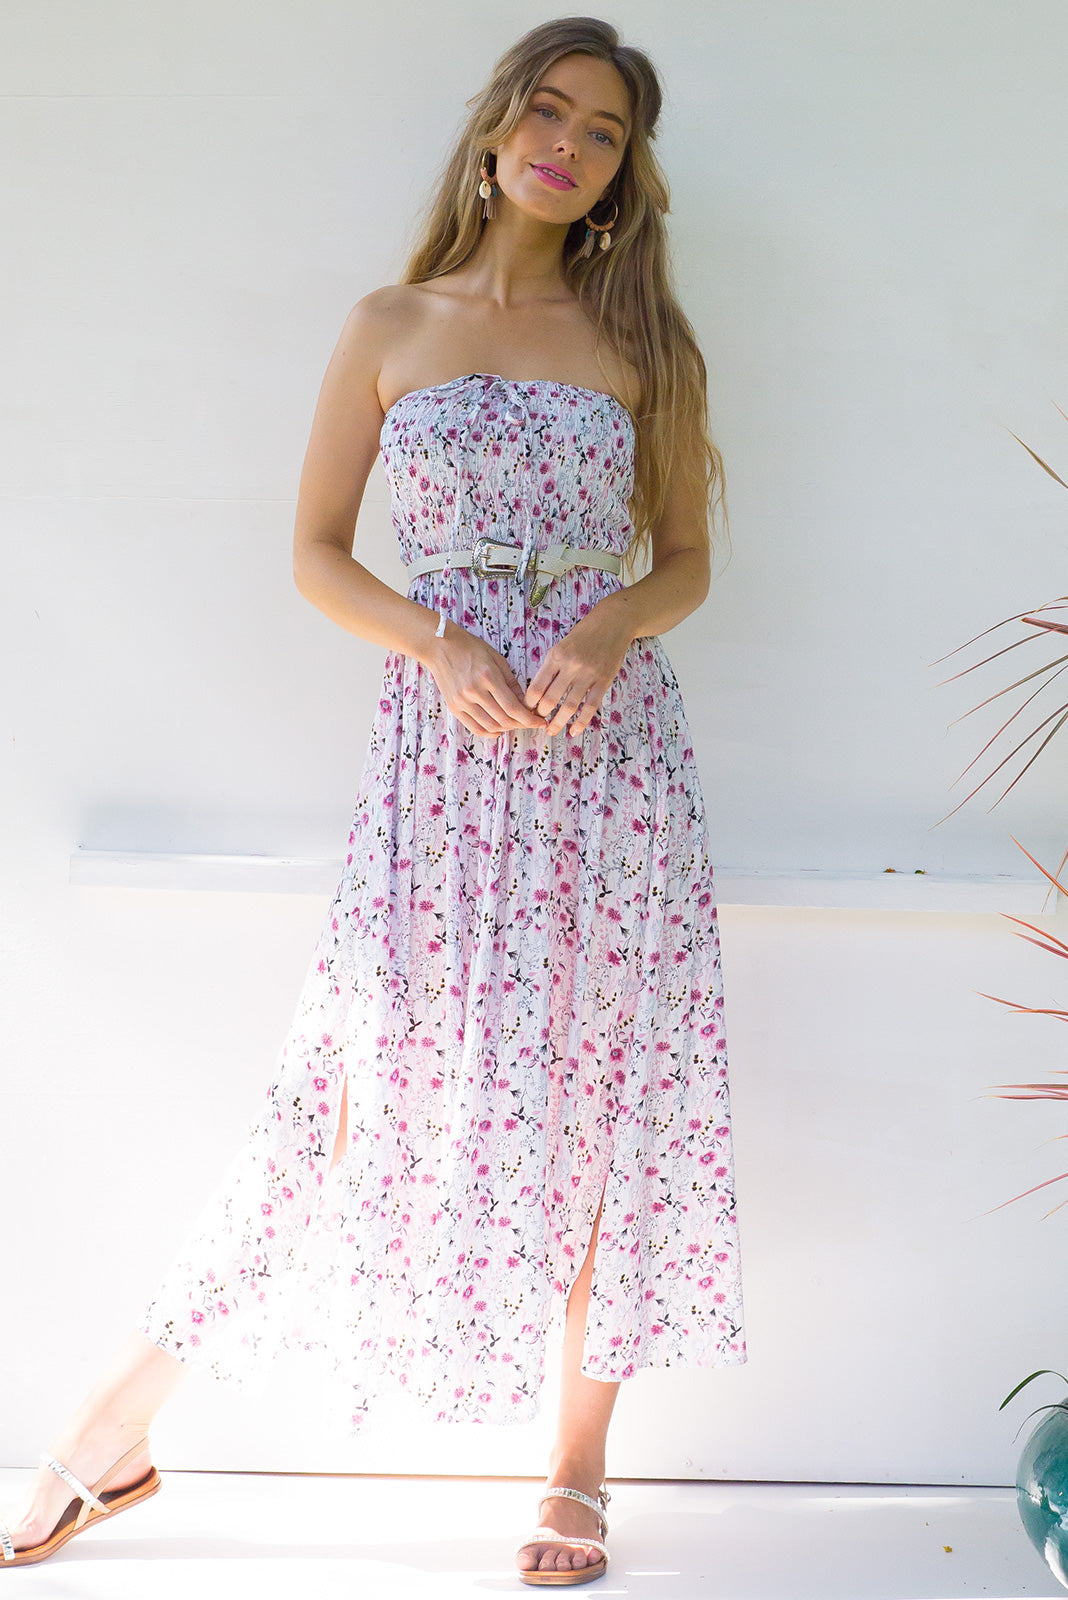 Kokomo Dune White Maxi Dress with a ruched strapless bodice and halter tie at neck in a crinkled floral rayon